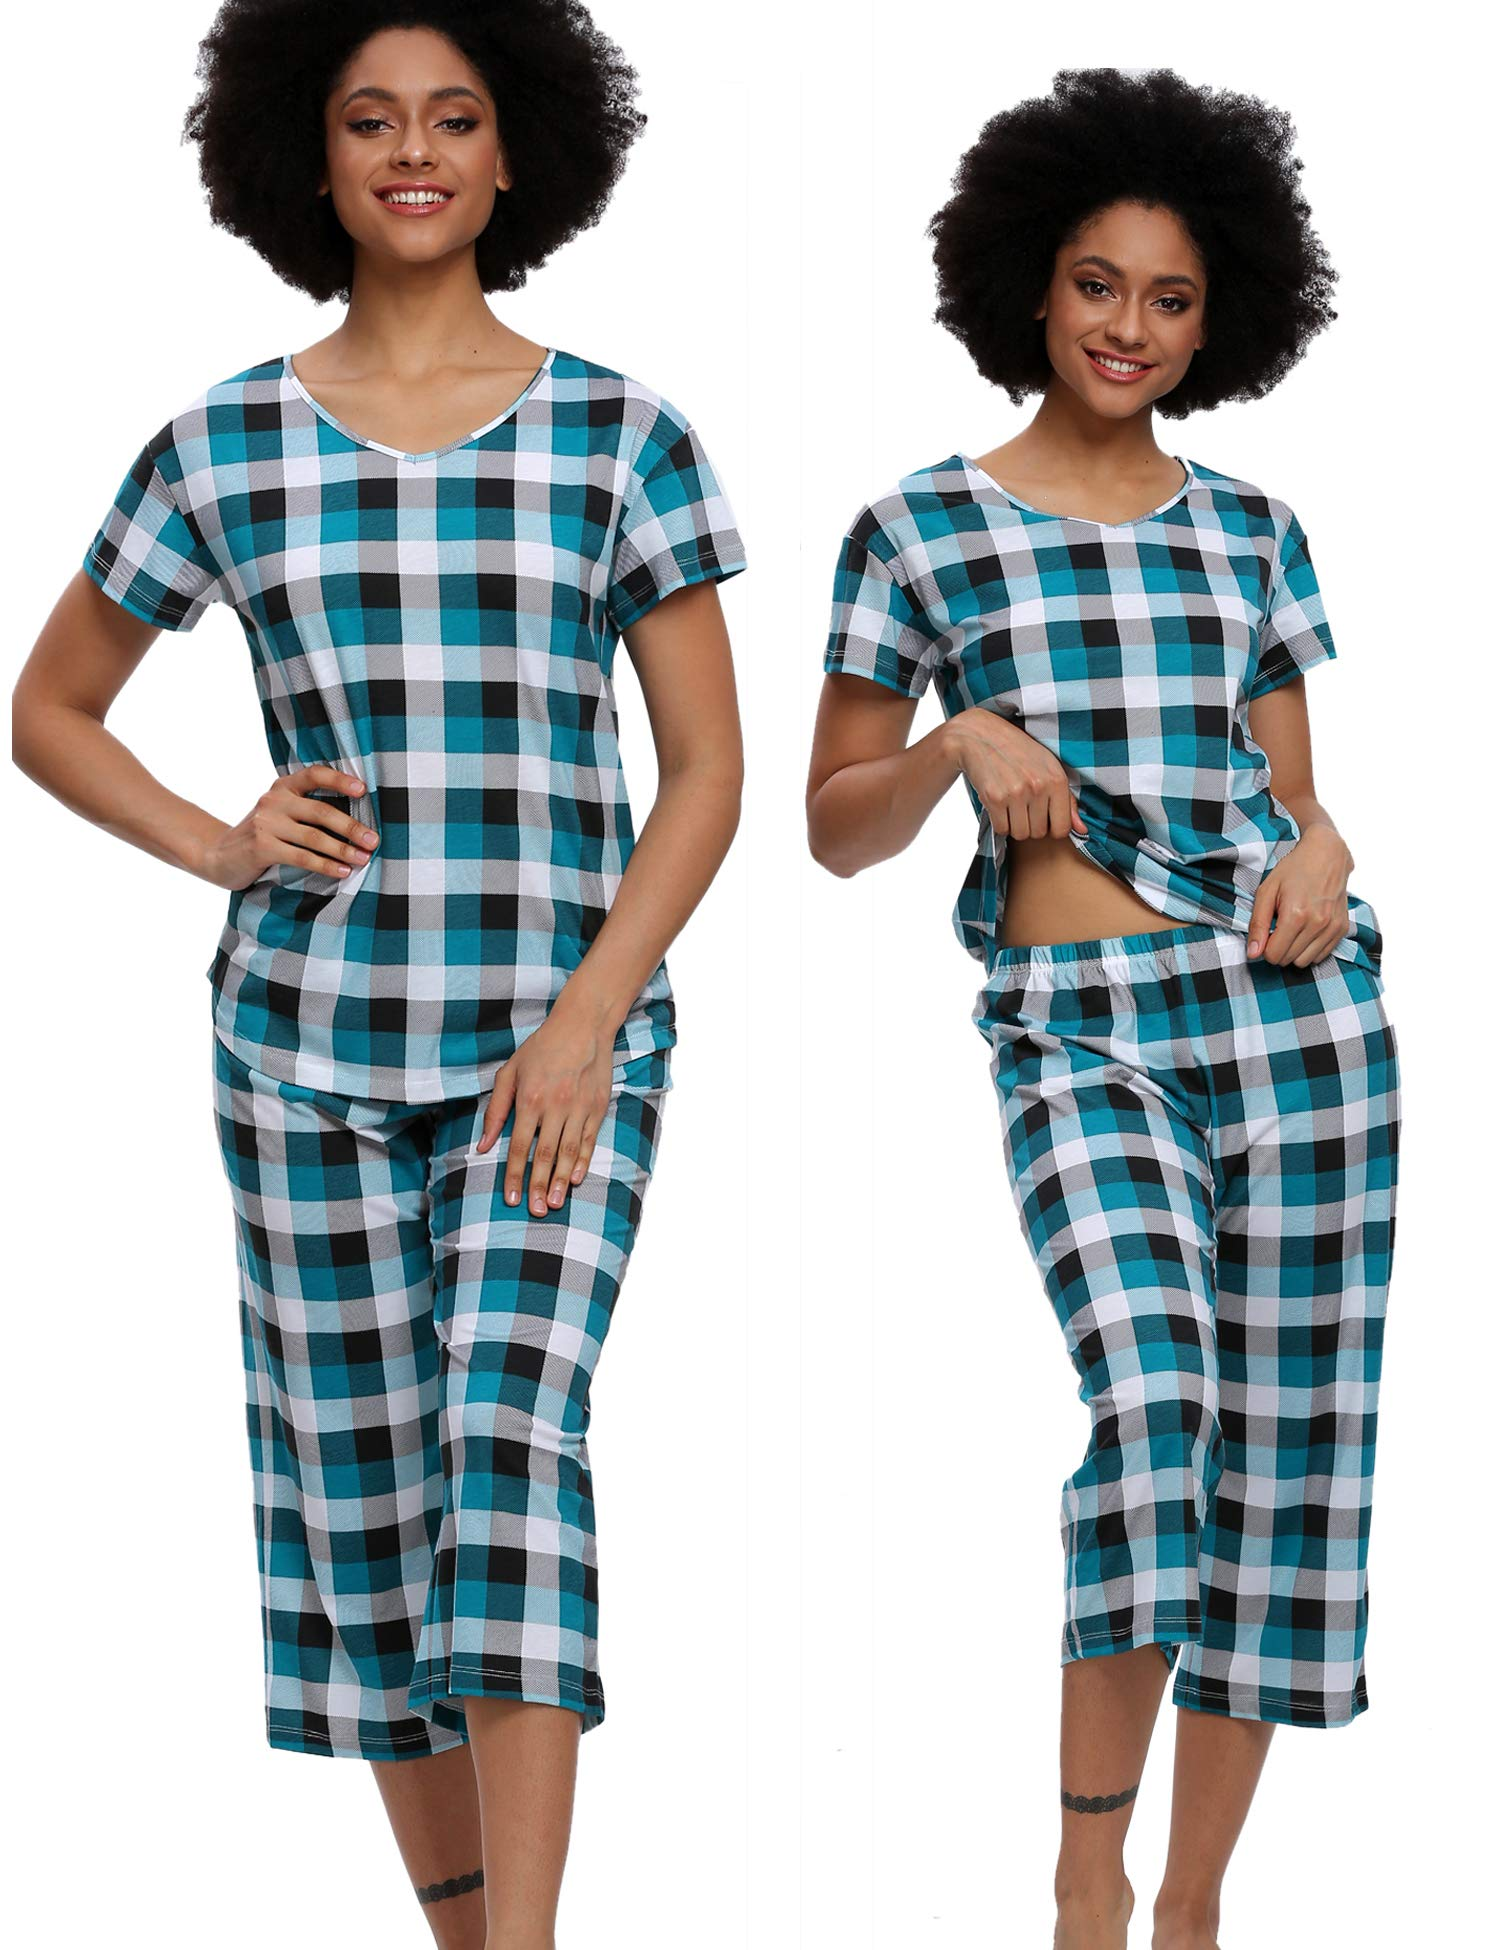 ENJOYNIGHT Pajamas Set Women's Cute Tops with Capri Pants Sleepwear Sets Plus Pj Lounge Nightgowns (Lattice G, XXX-Large)